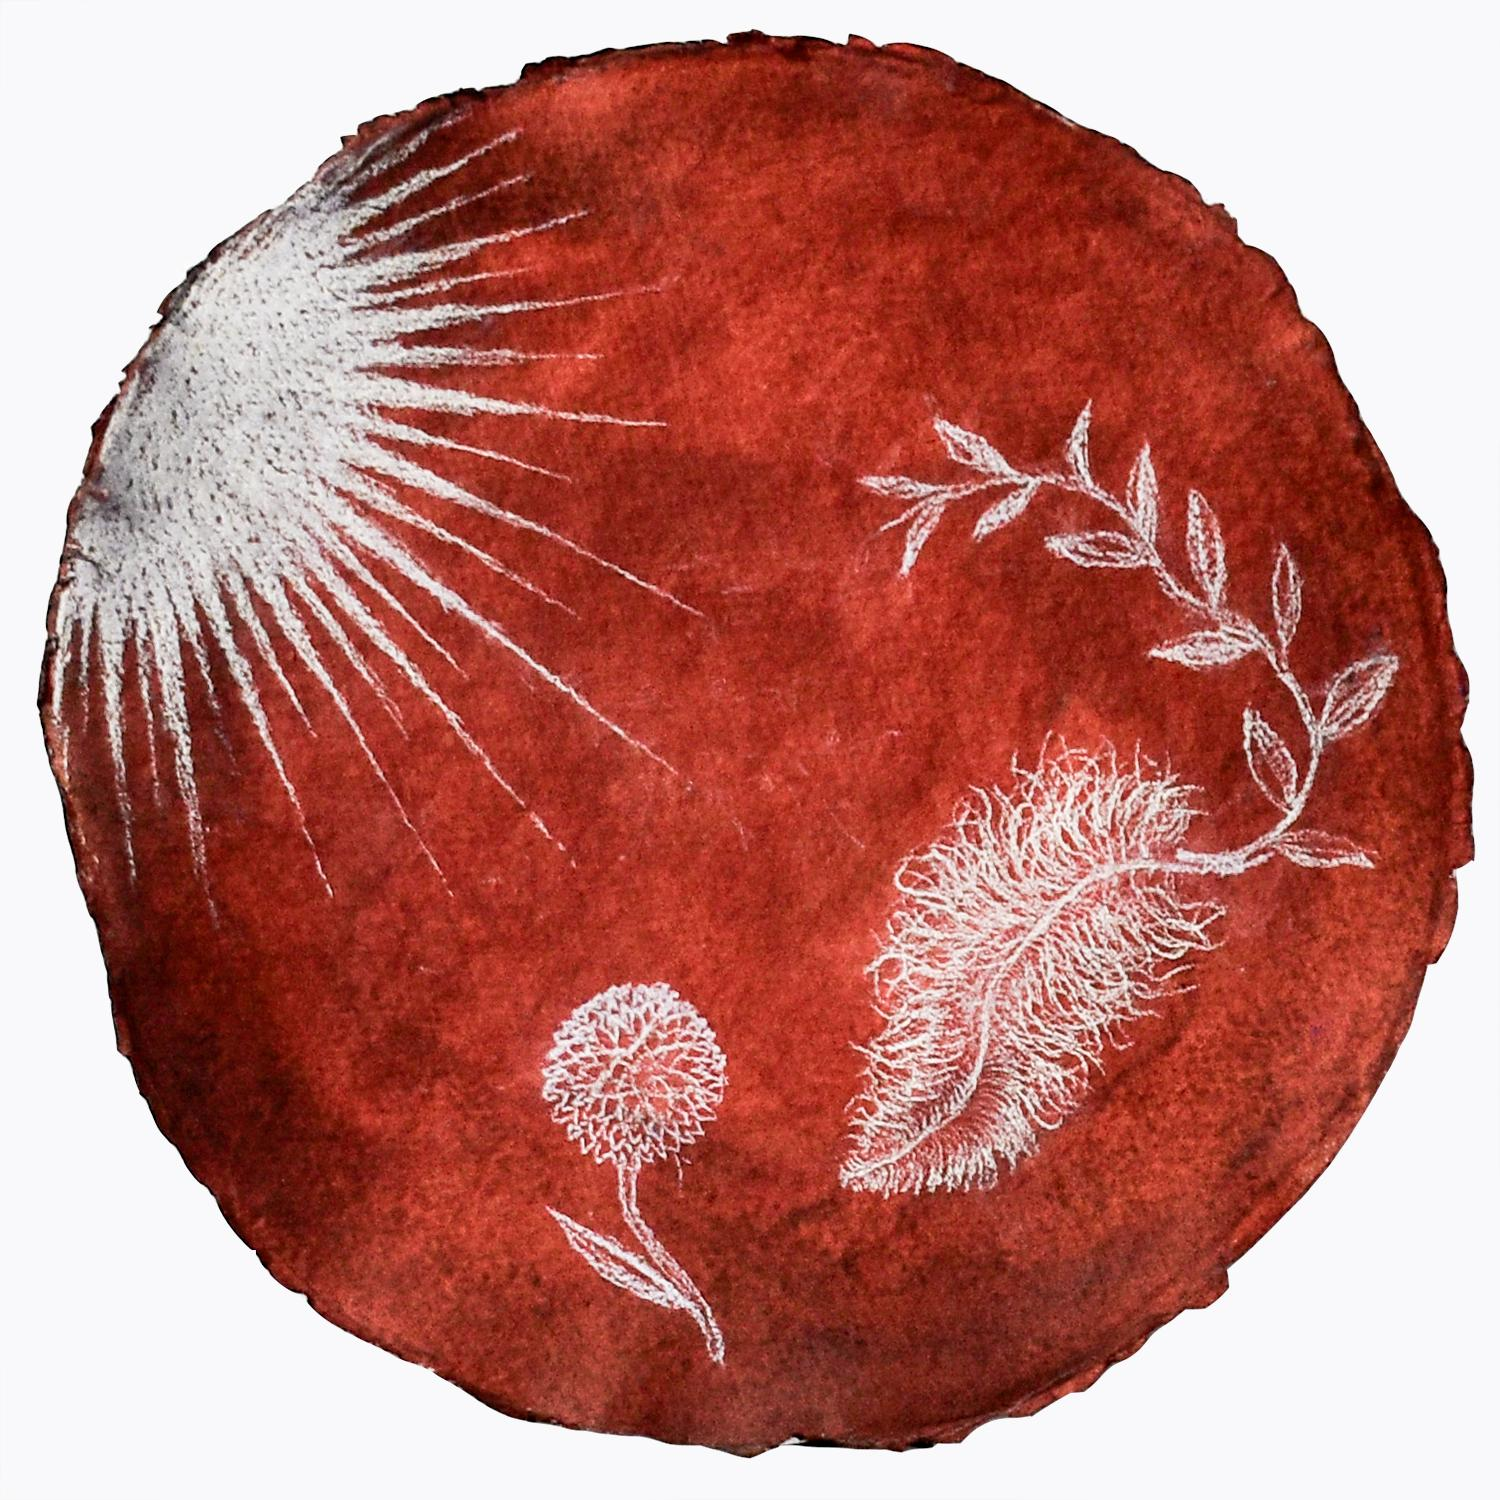 Feather Augury (Crimson Pastel Drawings on Handmade Paper by Kahn & Selesnick)